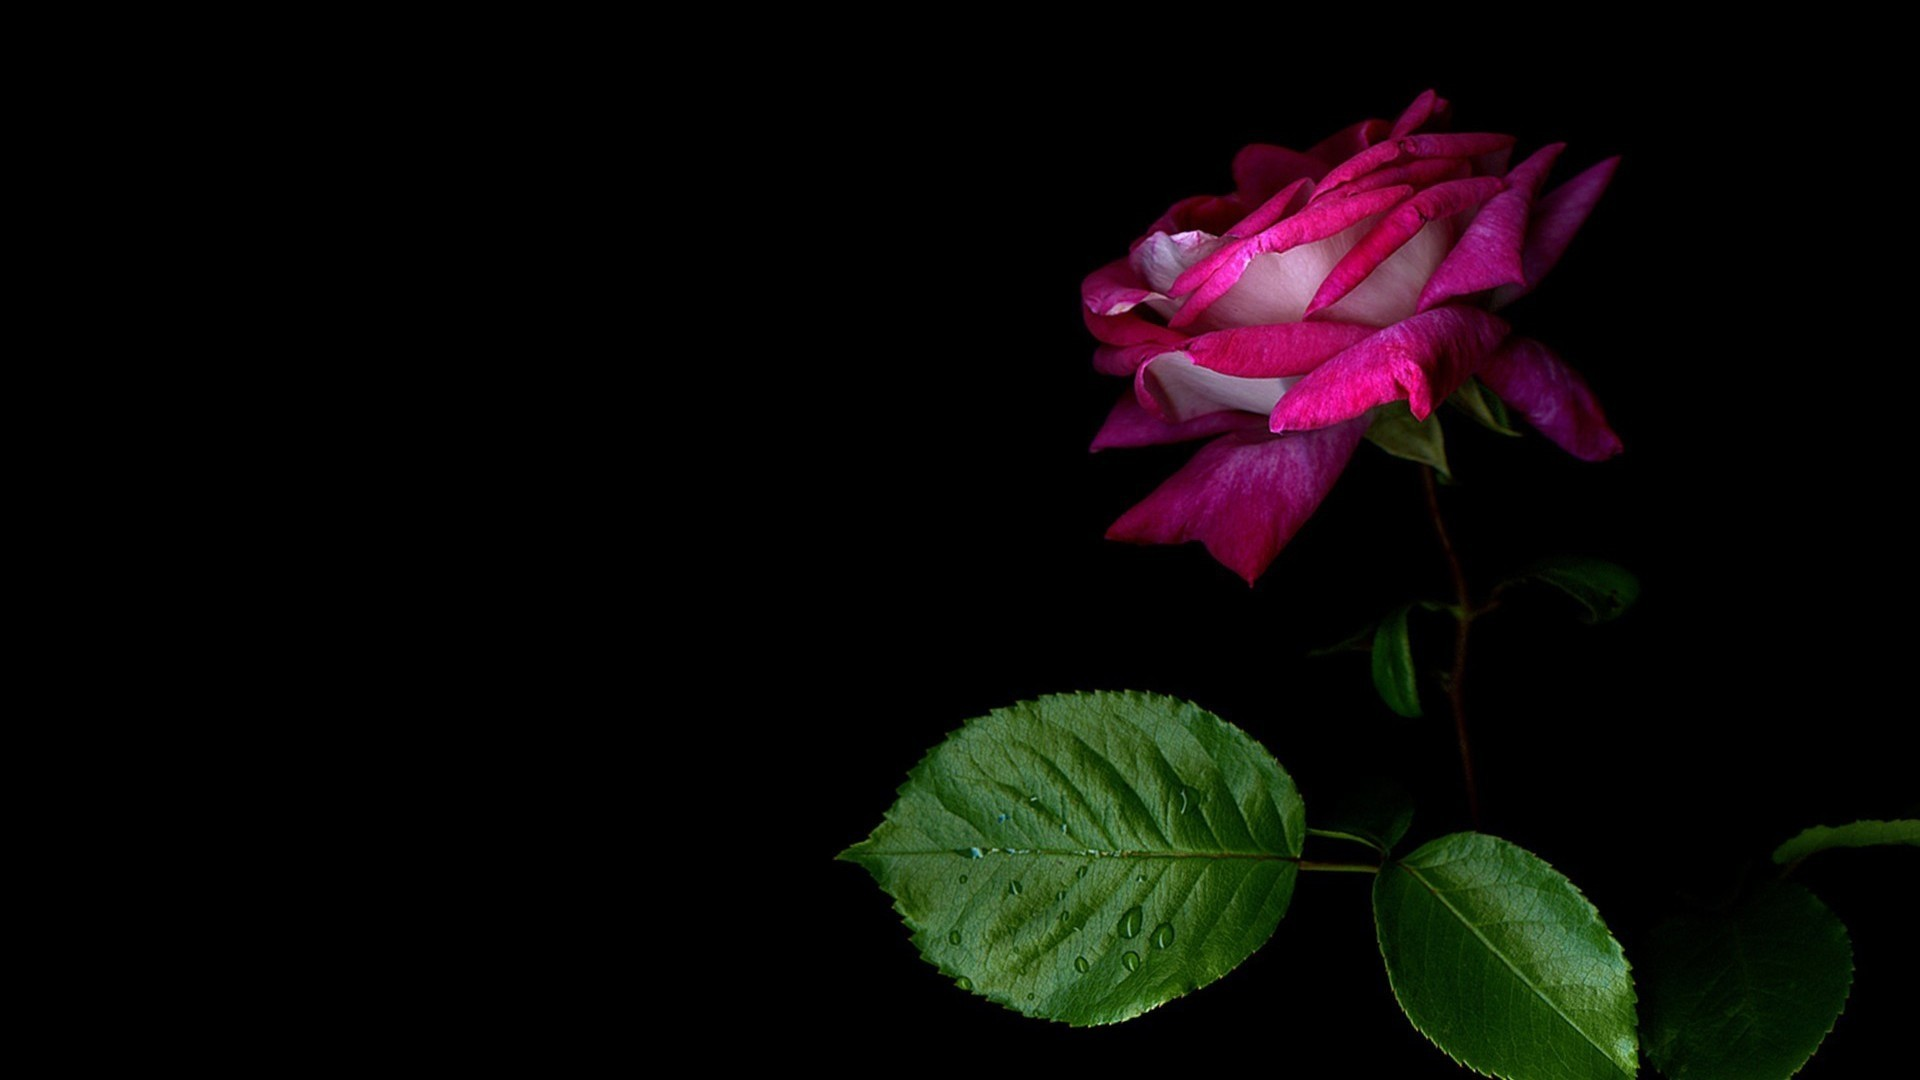 Pink and black backgrounds for desktop 58 images - Pink rose black background wallpaper ...